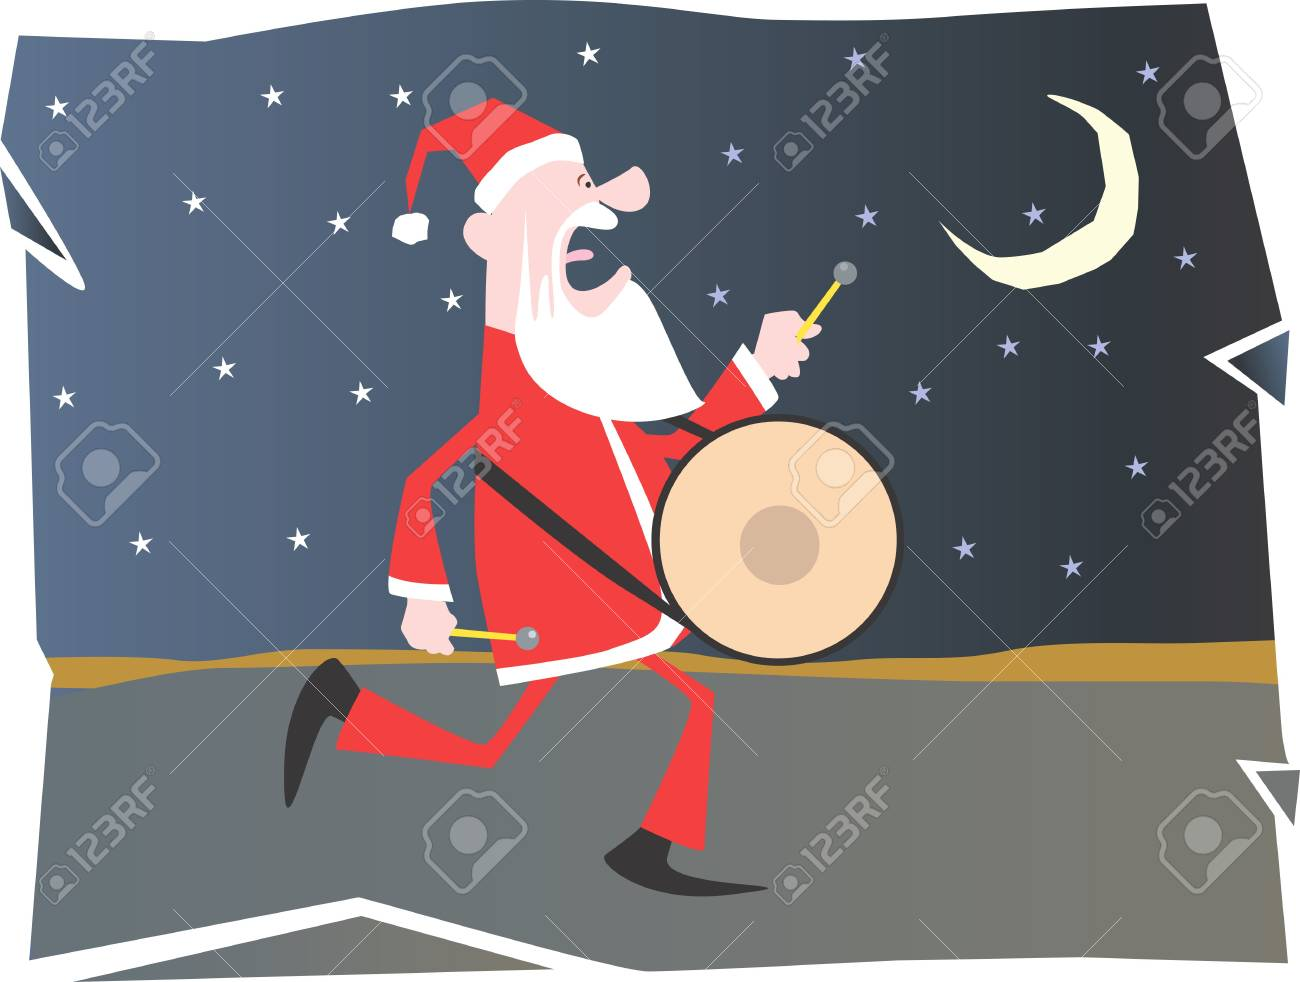 Santa clause on carol and playing drum Stock Photo - 2886327